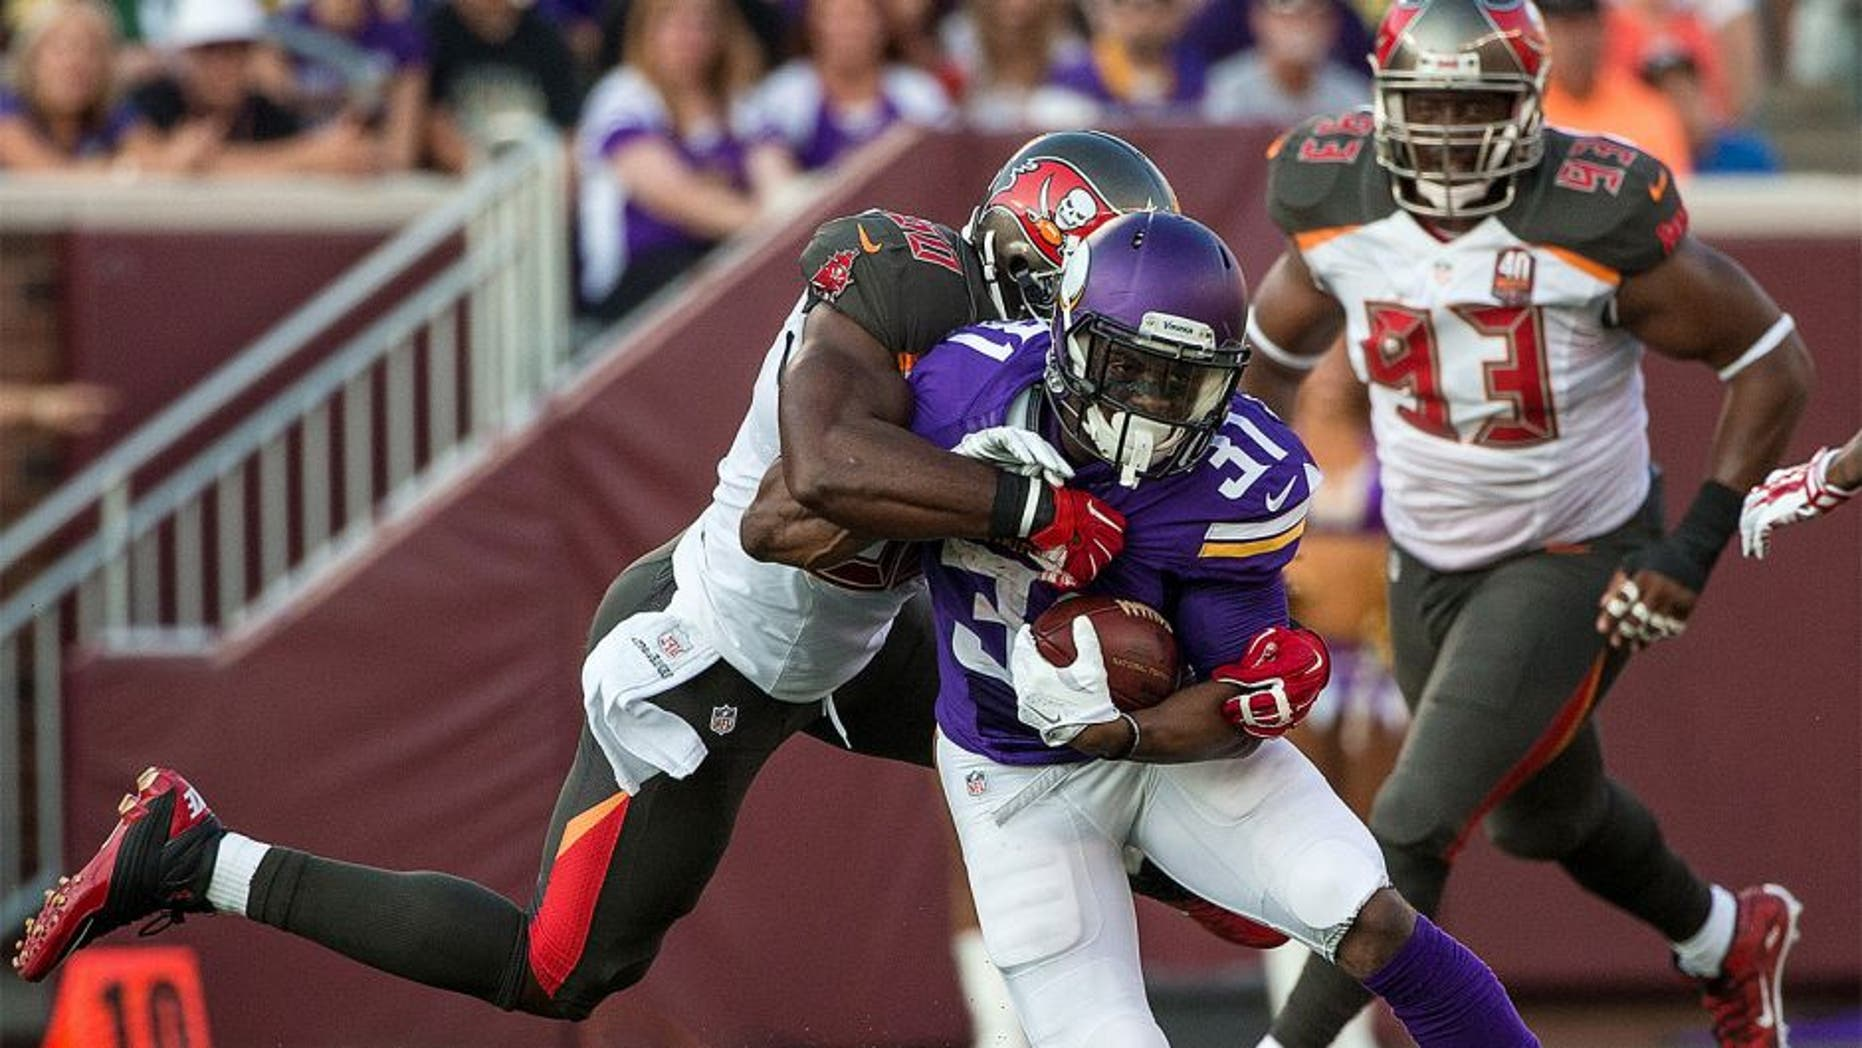 Aug 15, 2015; Minneapolis, MN, USA; Minnesota Vikings running back Jerick McKinnon (31) is tackled by Tampa Bay Buccaneers linebacker Bruce Carter (50) during the first quarter in a preseason NFL football game at TCF Bank Stadium. Mandatory Credit: Brace Hemmelgarn-USA TODAY Sports